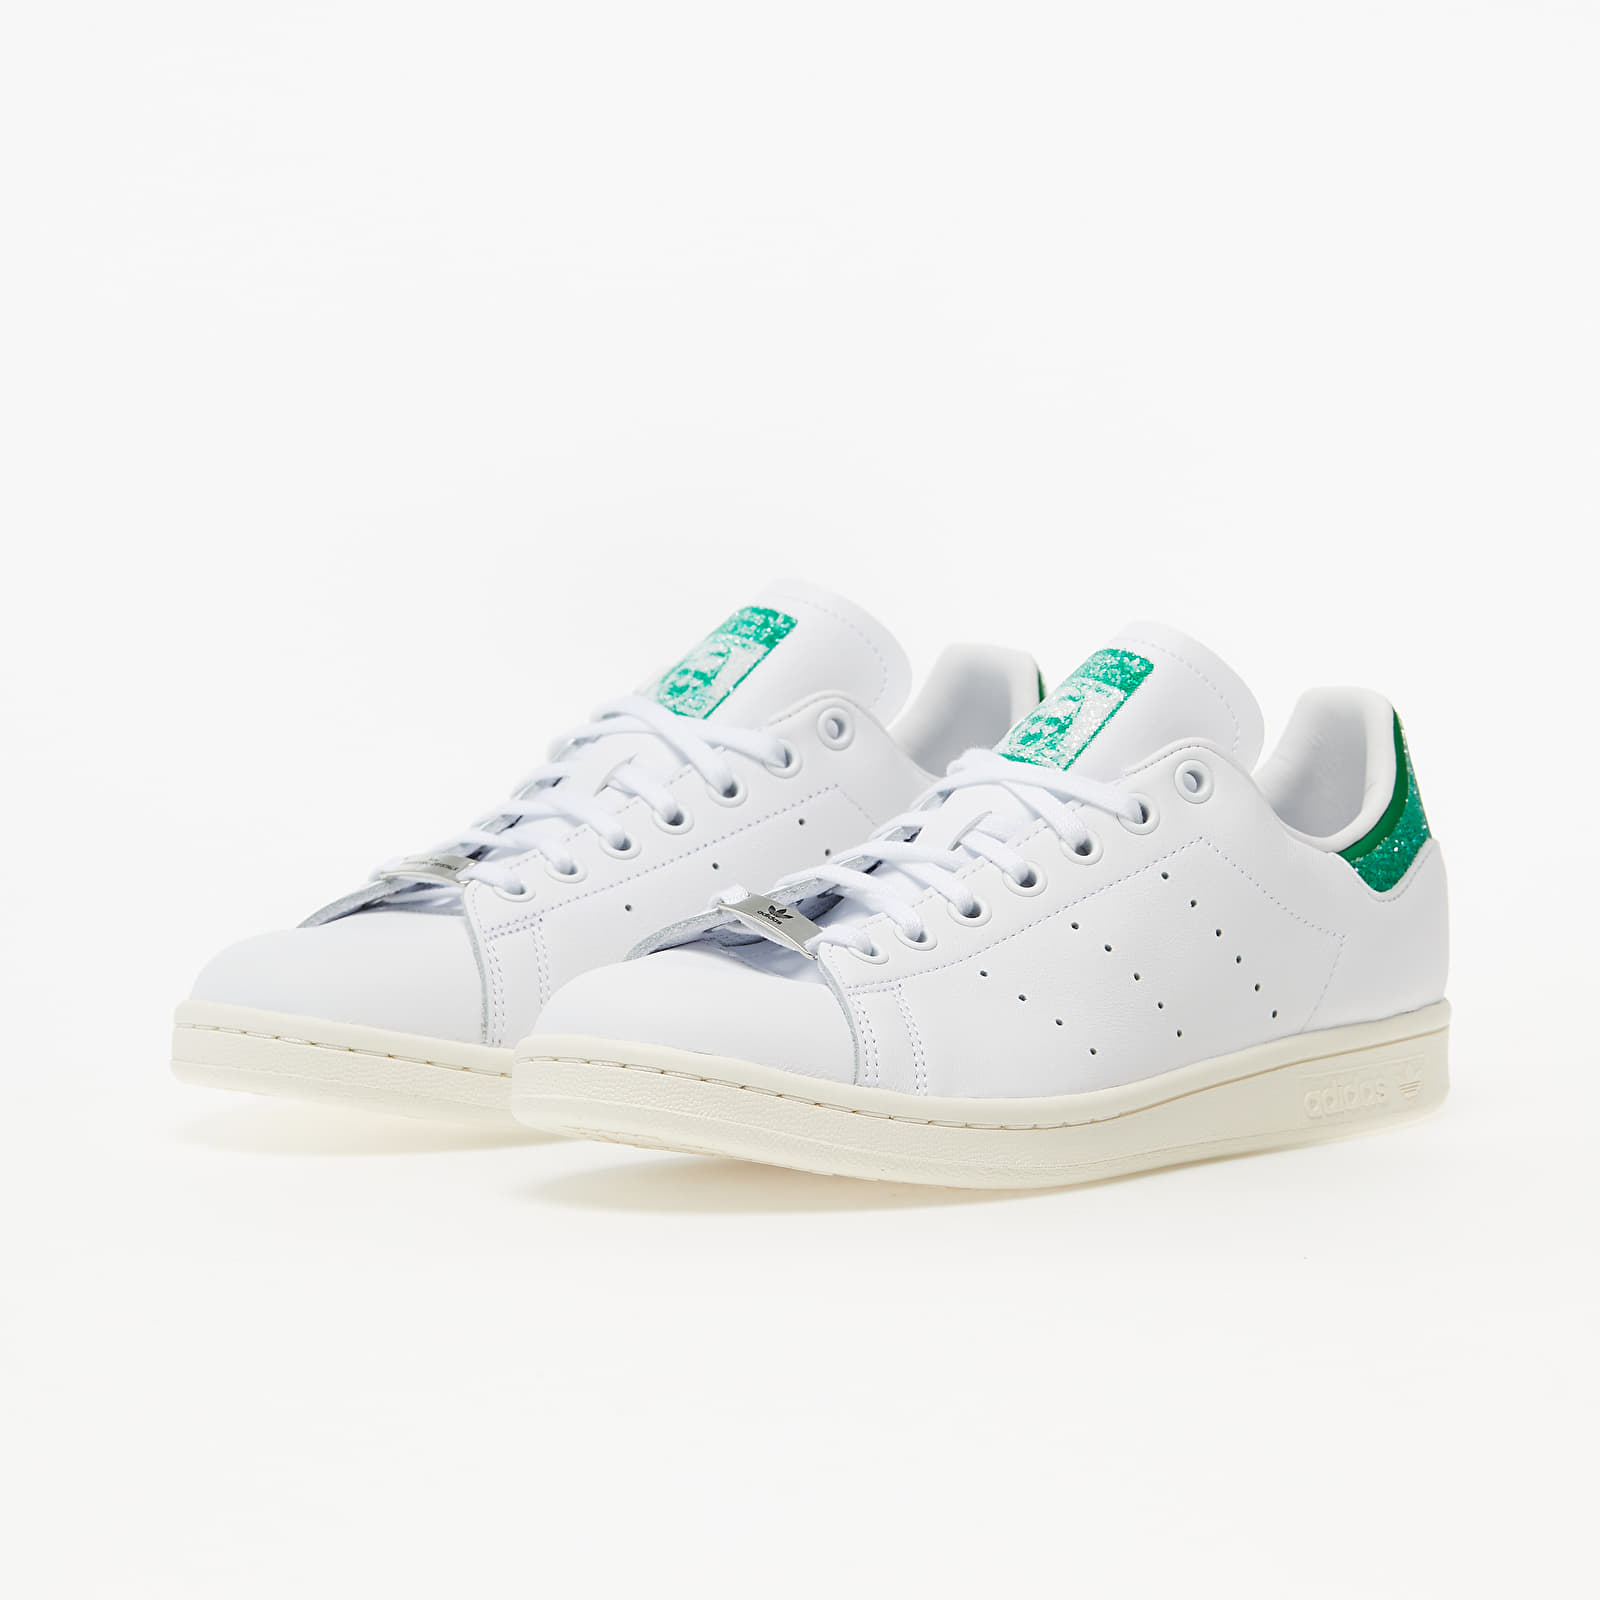 adidas x Swarovski Stan Smith Ftw White/ Green/ Off White